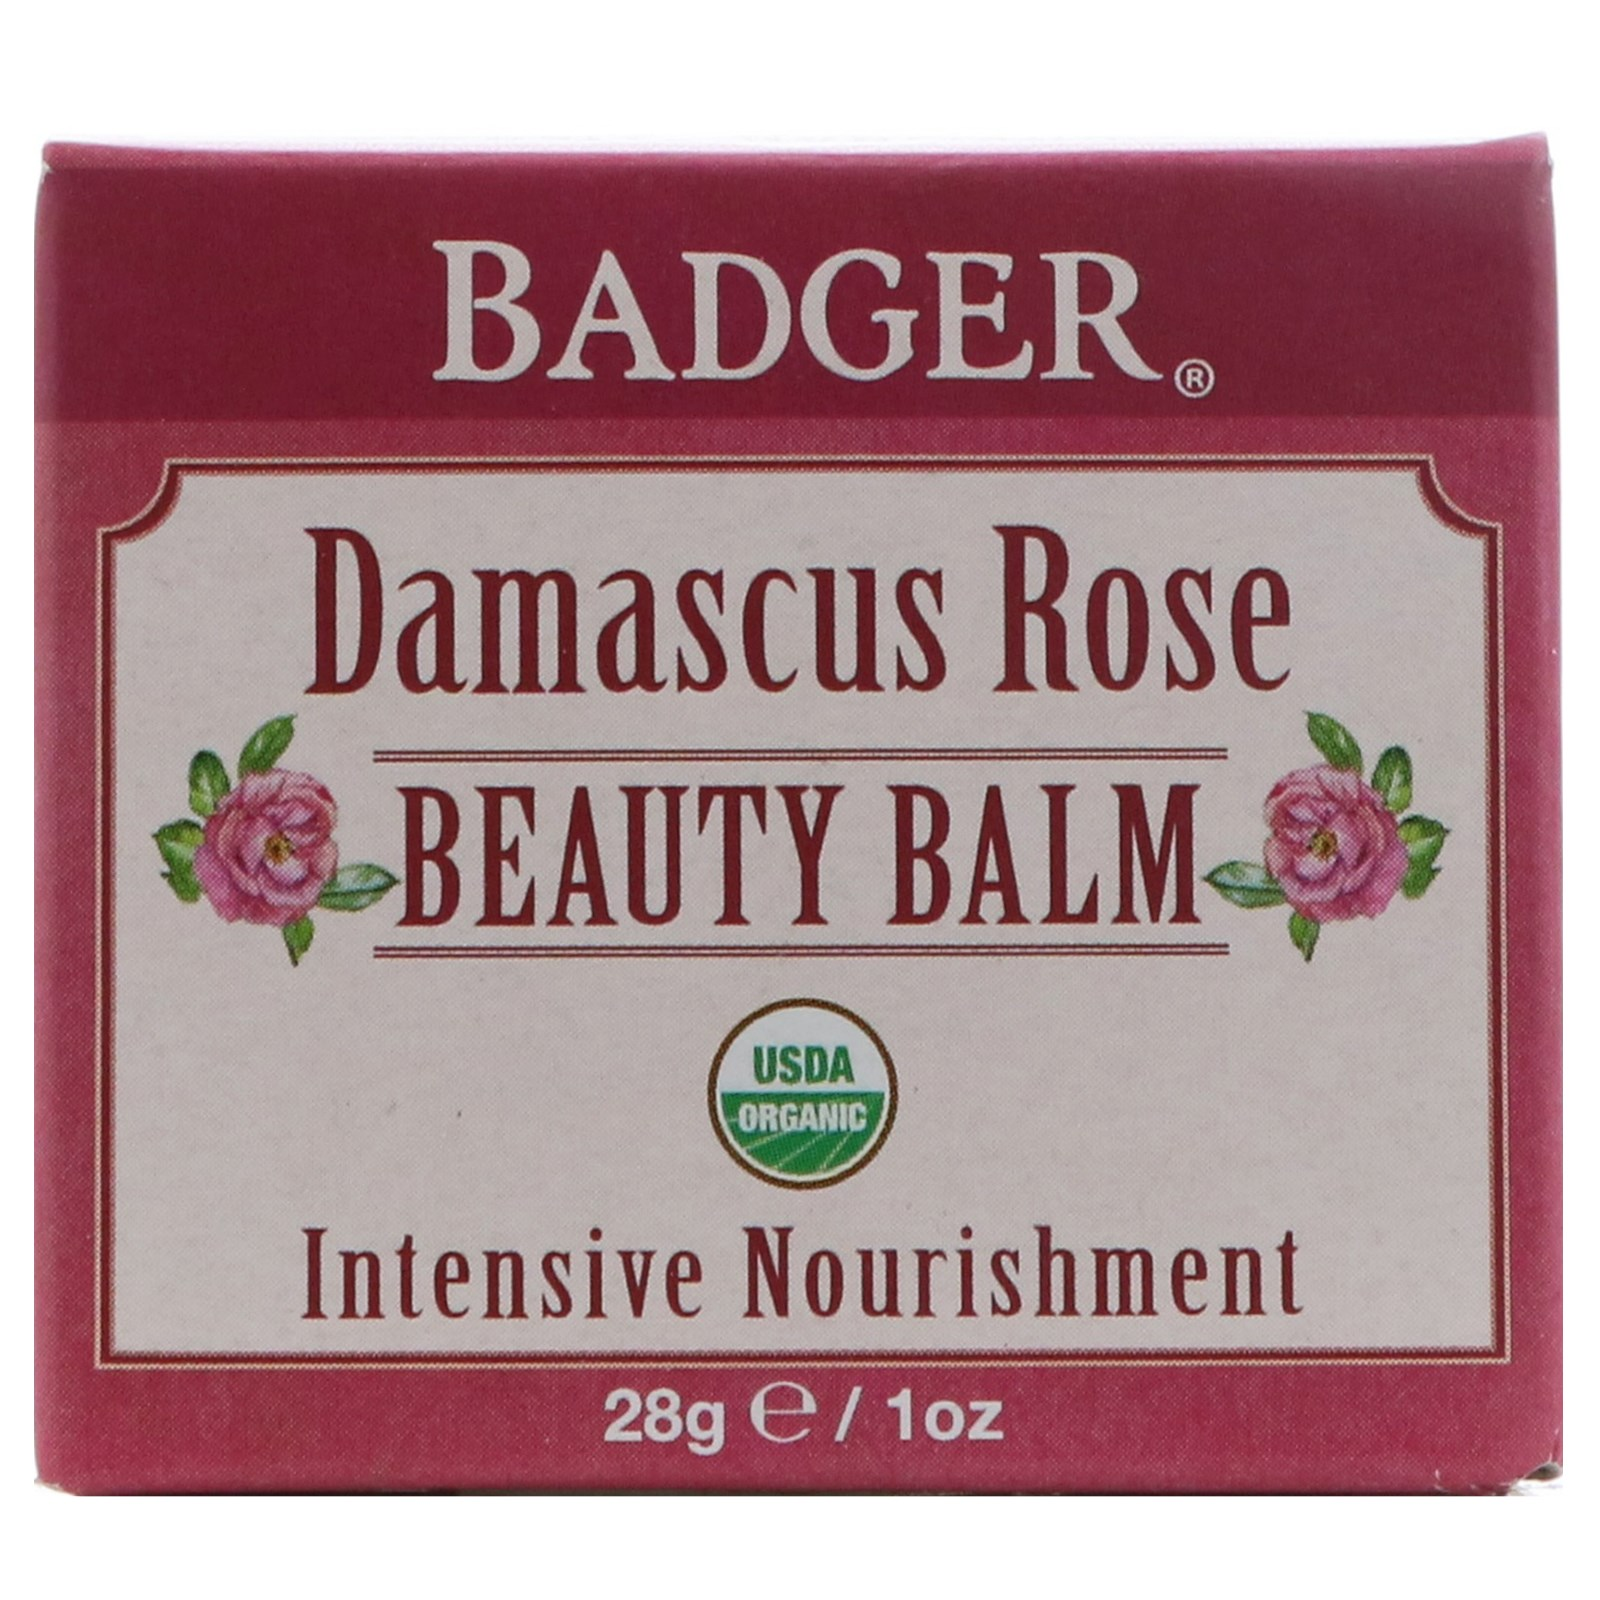 Damascus Rose Beauty Balm by badger #19